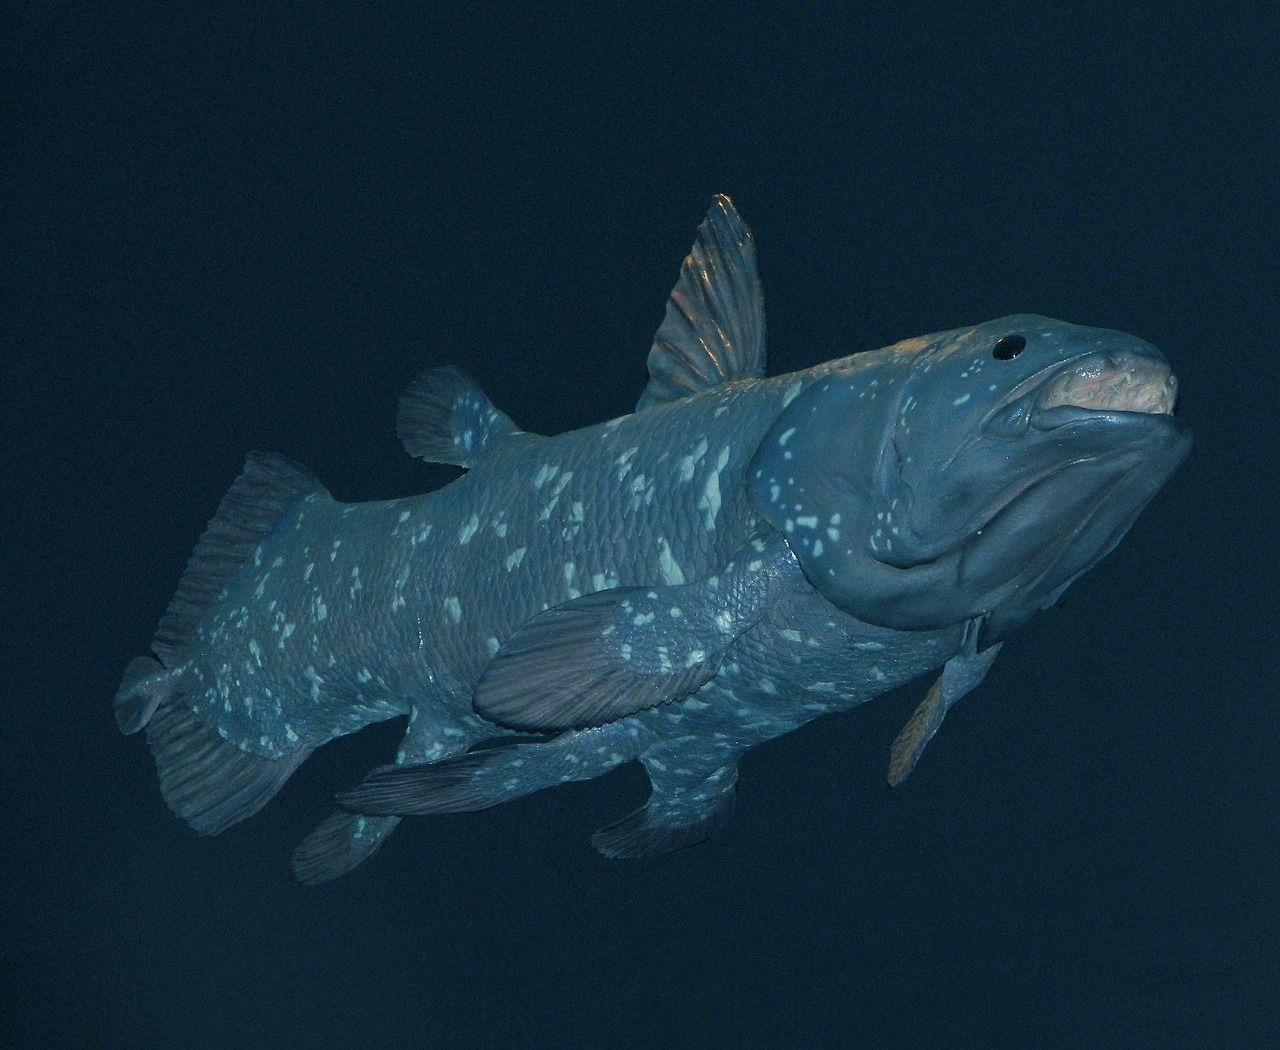 The Coelacanth A Member Of A Group Of Fishes That Existed